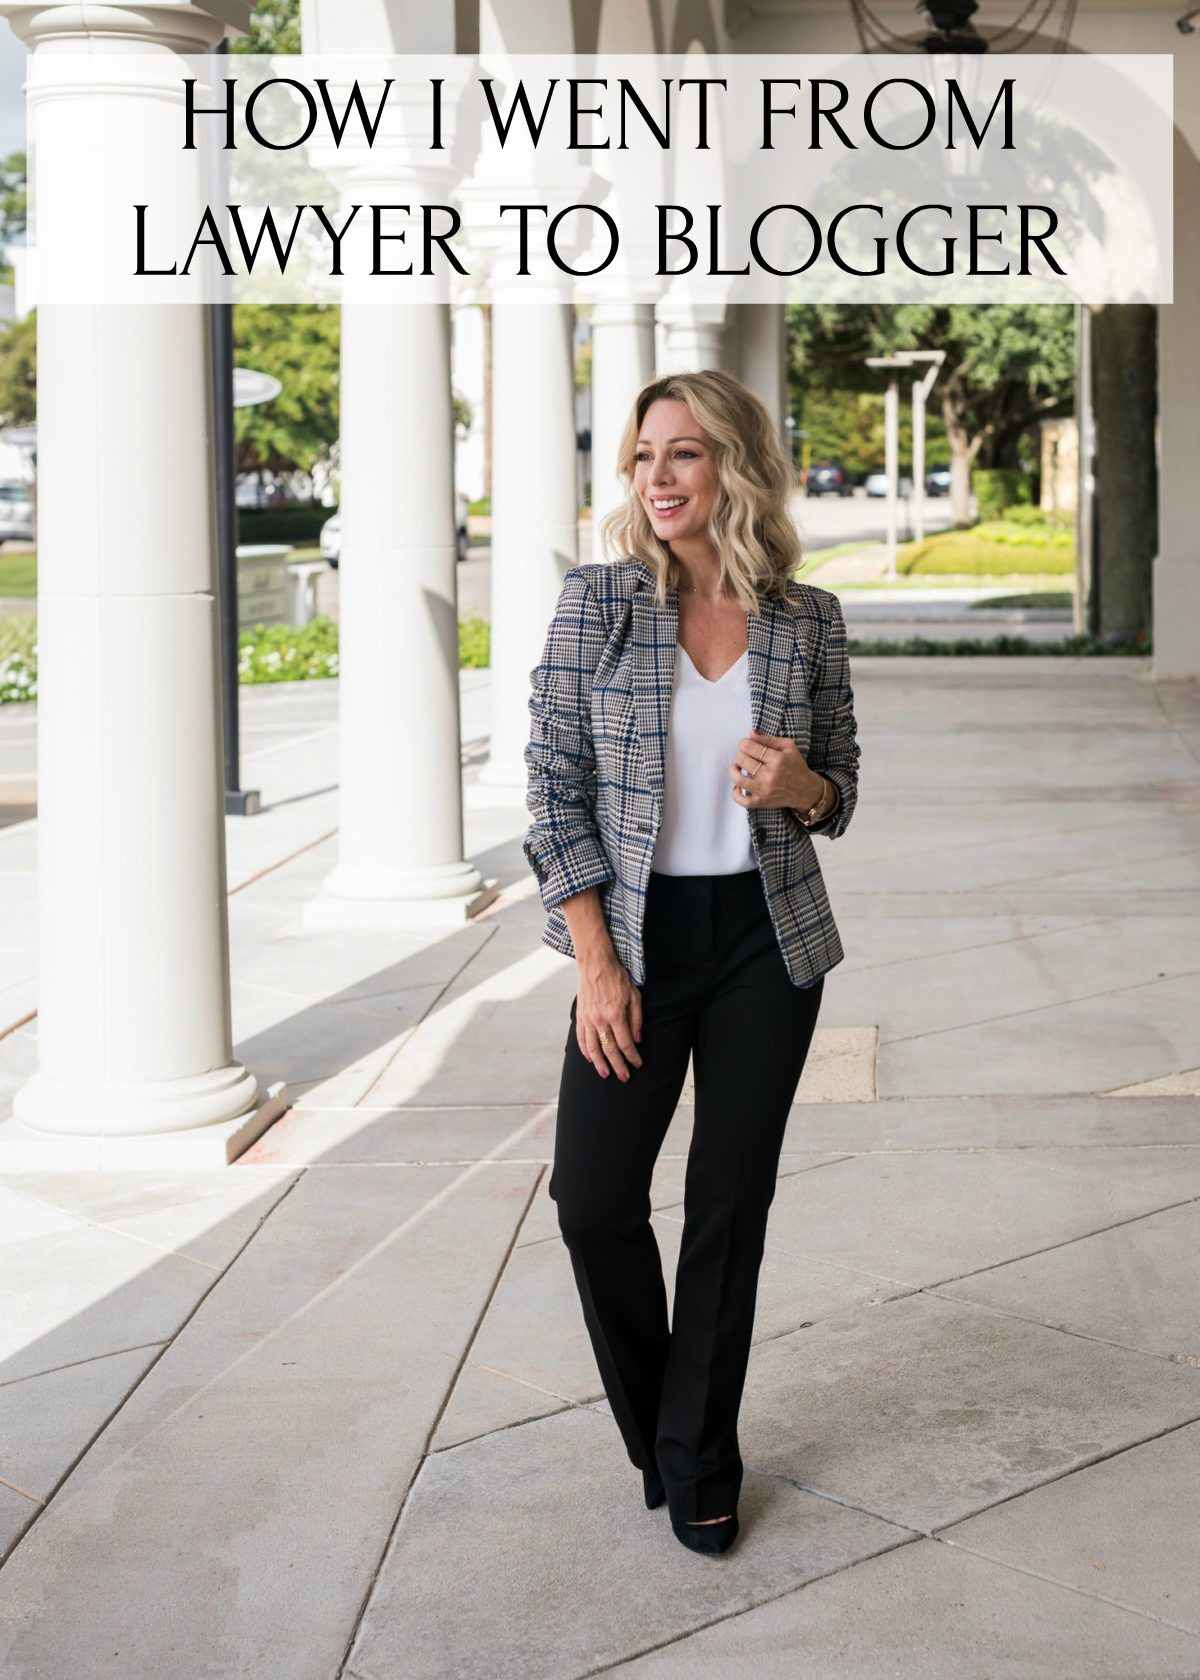 How to go from Lawyer to Blogger